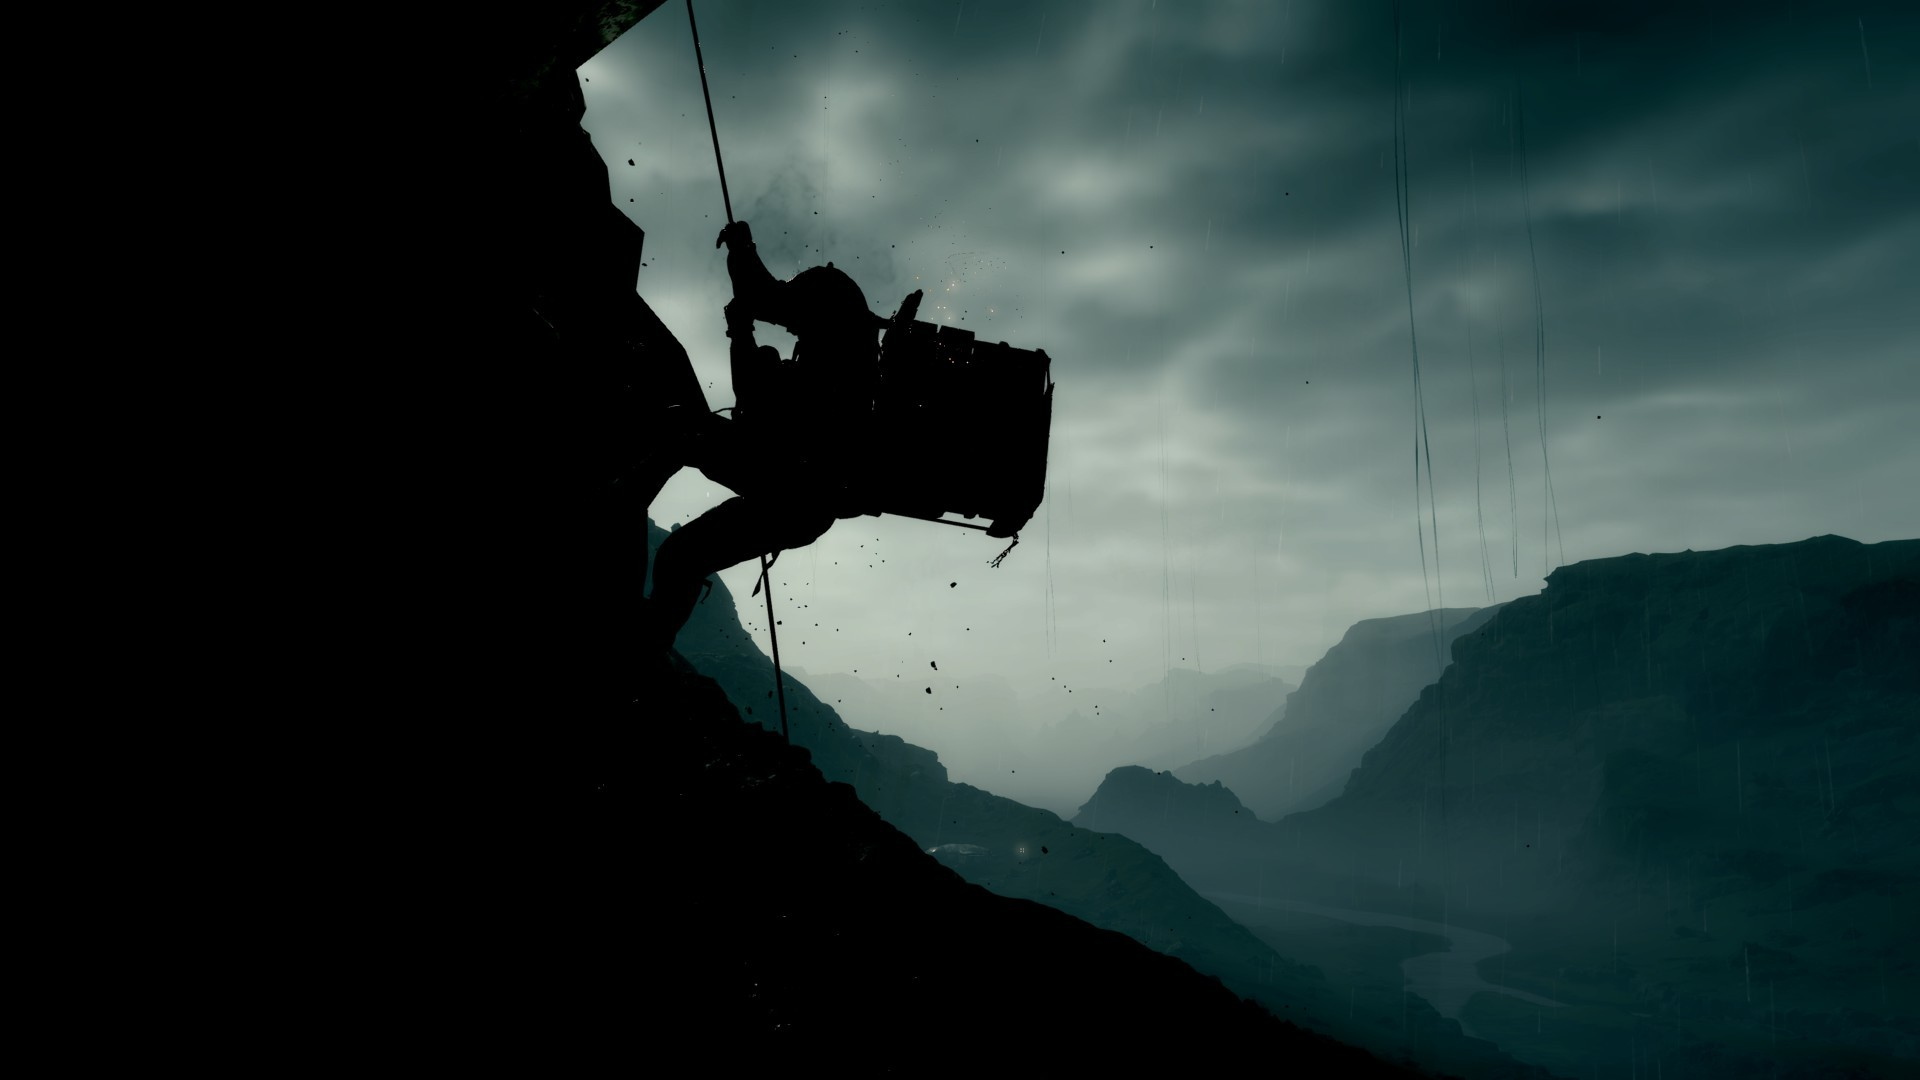 (Username: LaFrite) This shot is cool. The dark clouds...and the silhouette of Sam, risking his life trying to overcome the obstacles. - Matsuhana